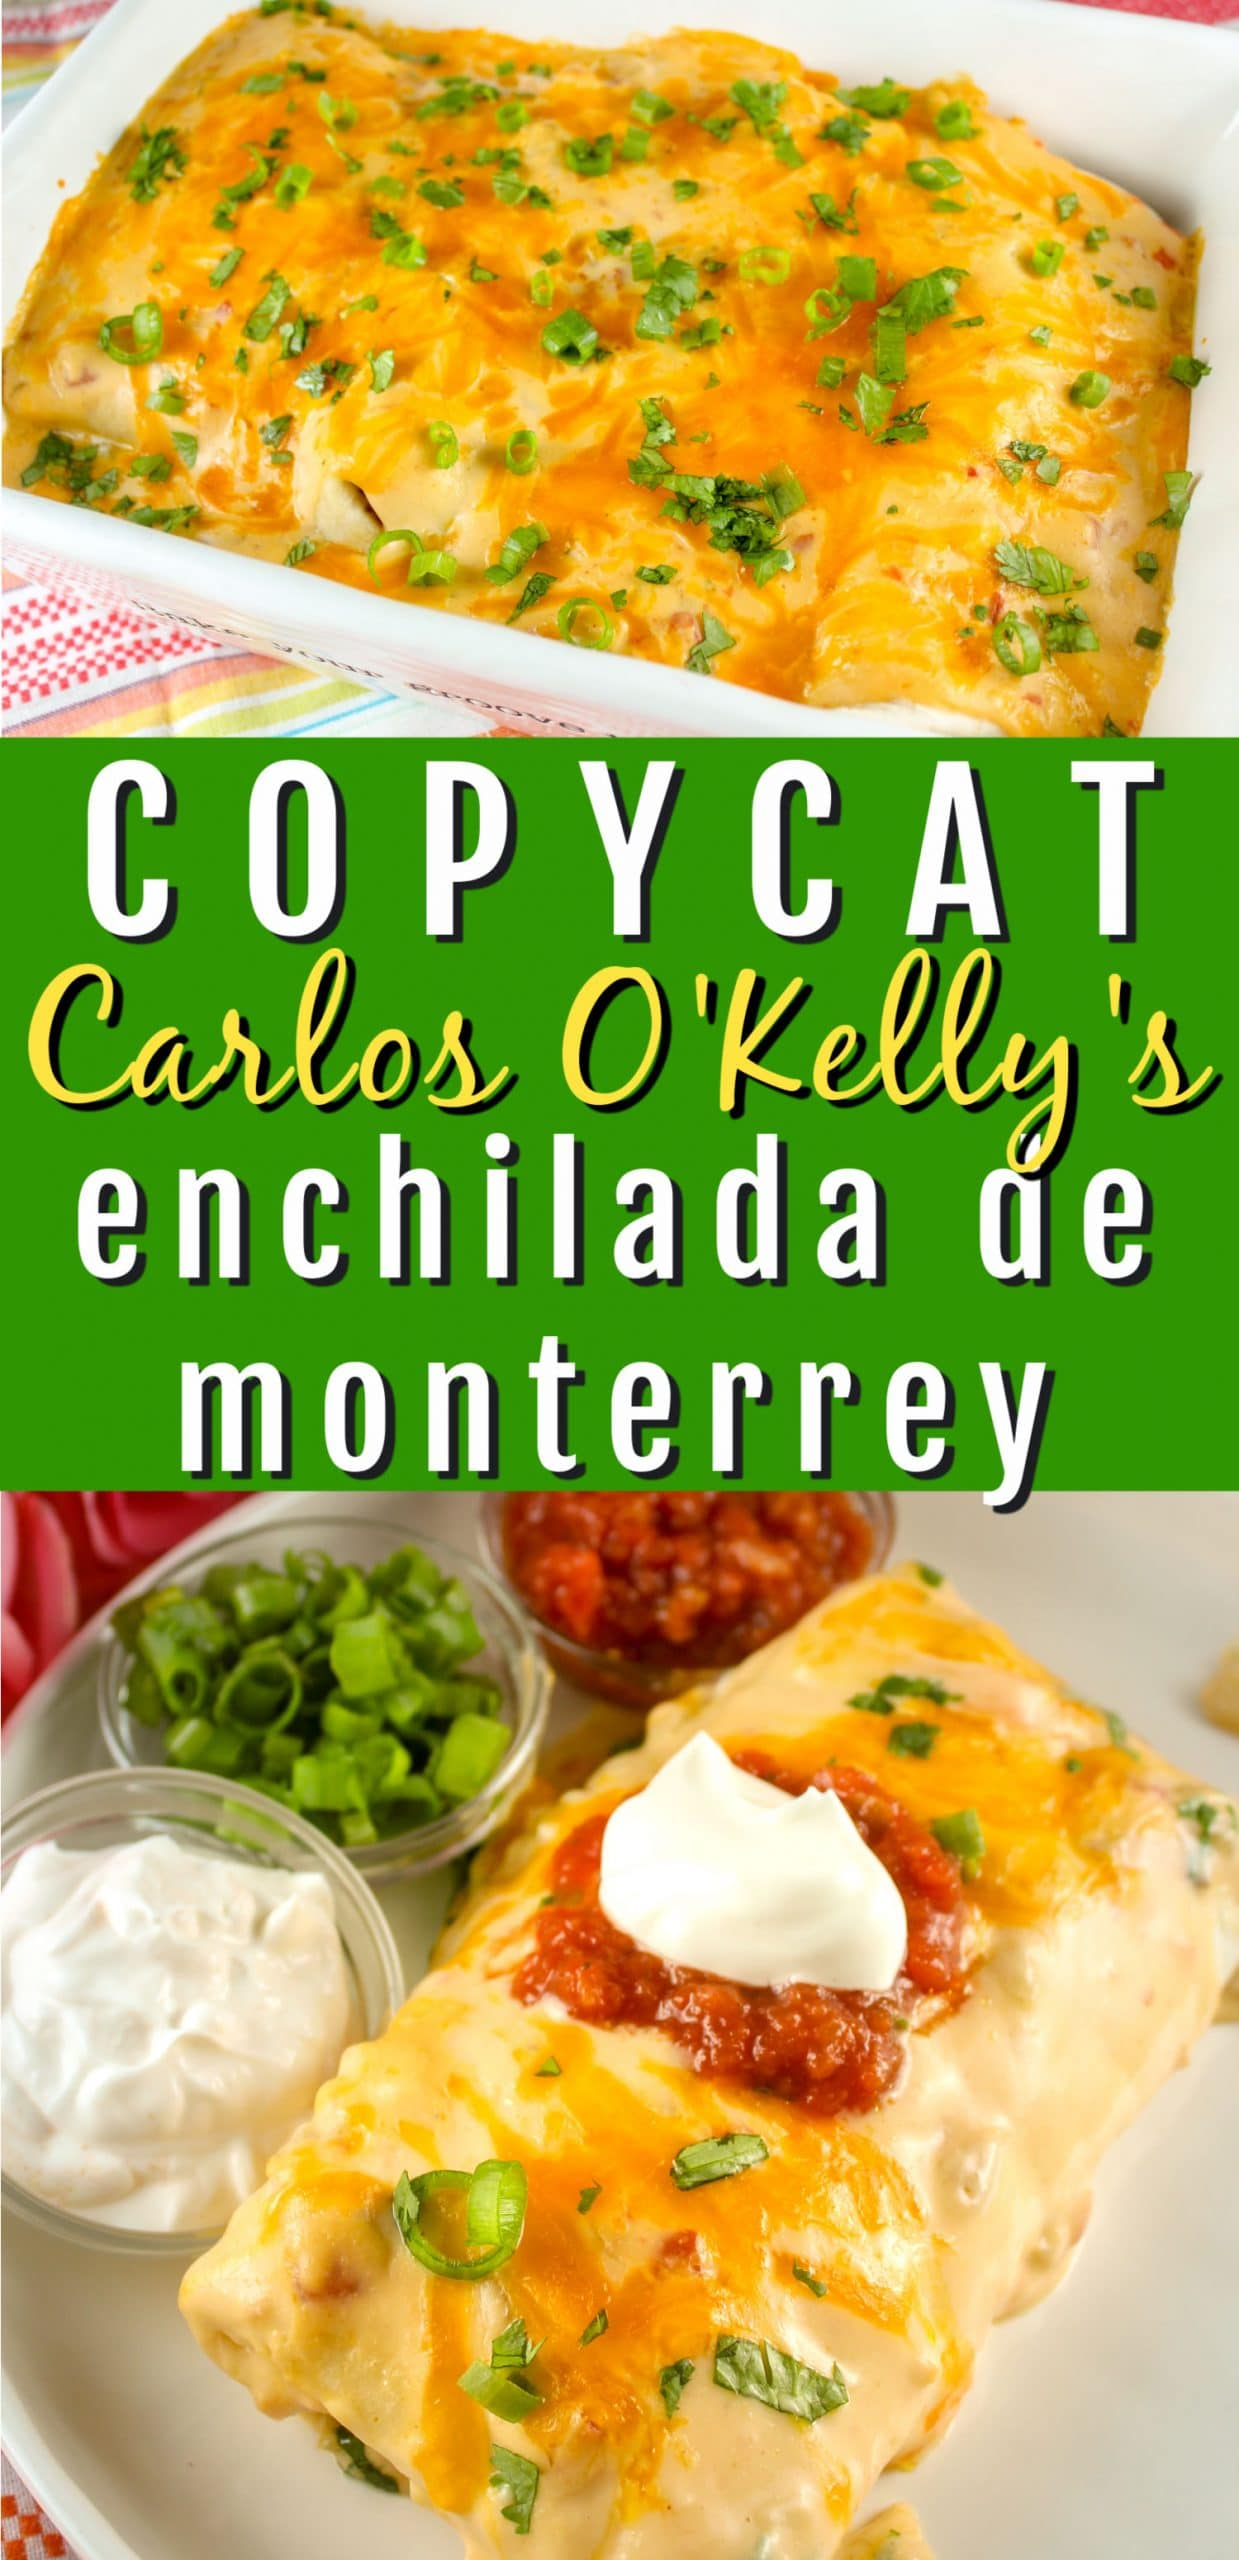 One of the best selling dishes at Carlos O'Kelly's is their Enchilada de Monterrey! Pulled Chicken and Monterrey Jack rolled in a flour tortilla and covered with cheese enchilada sauce - it's so good!  via @foodhussy